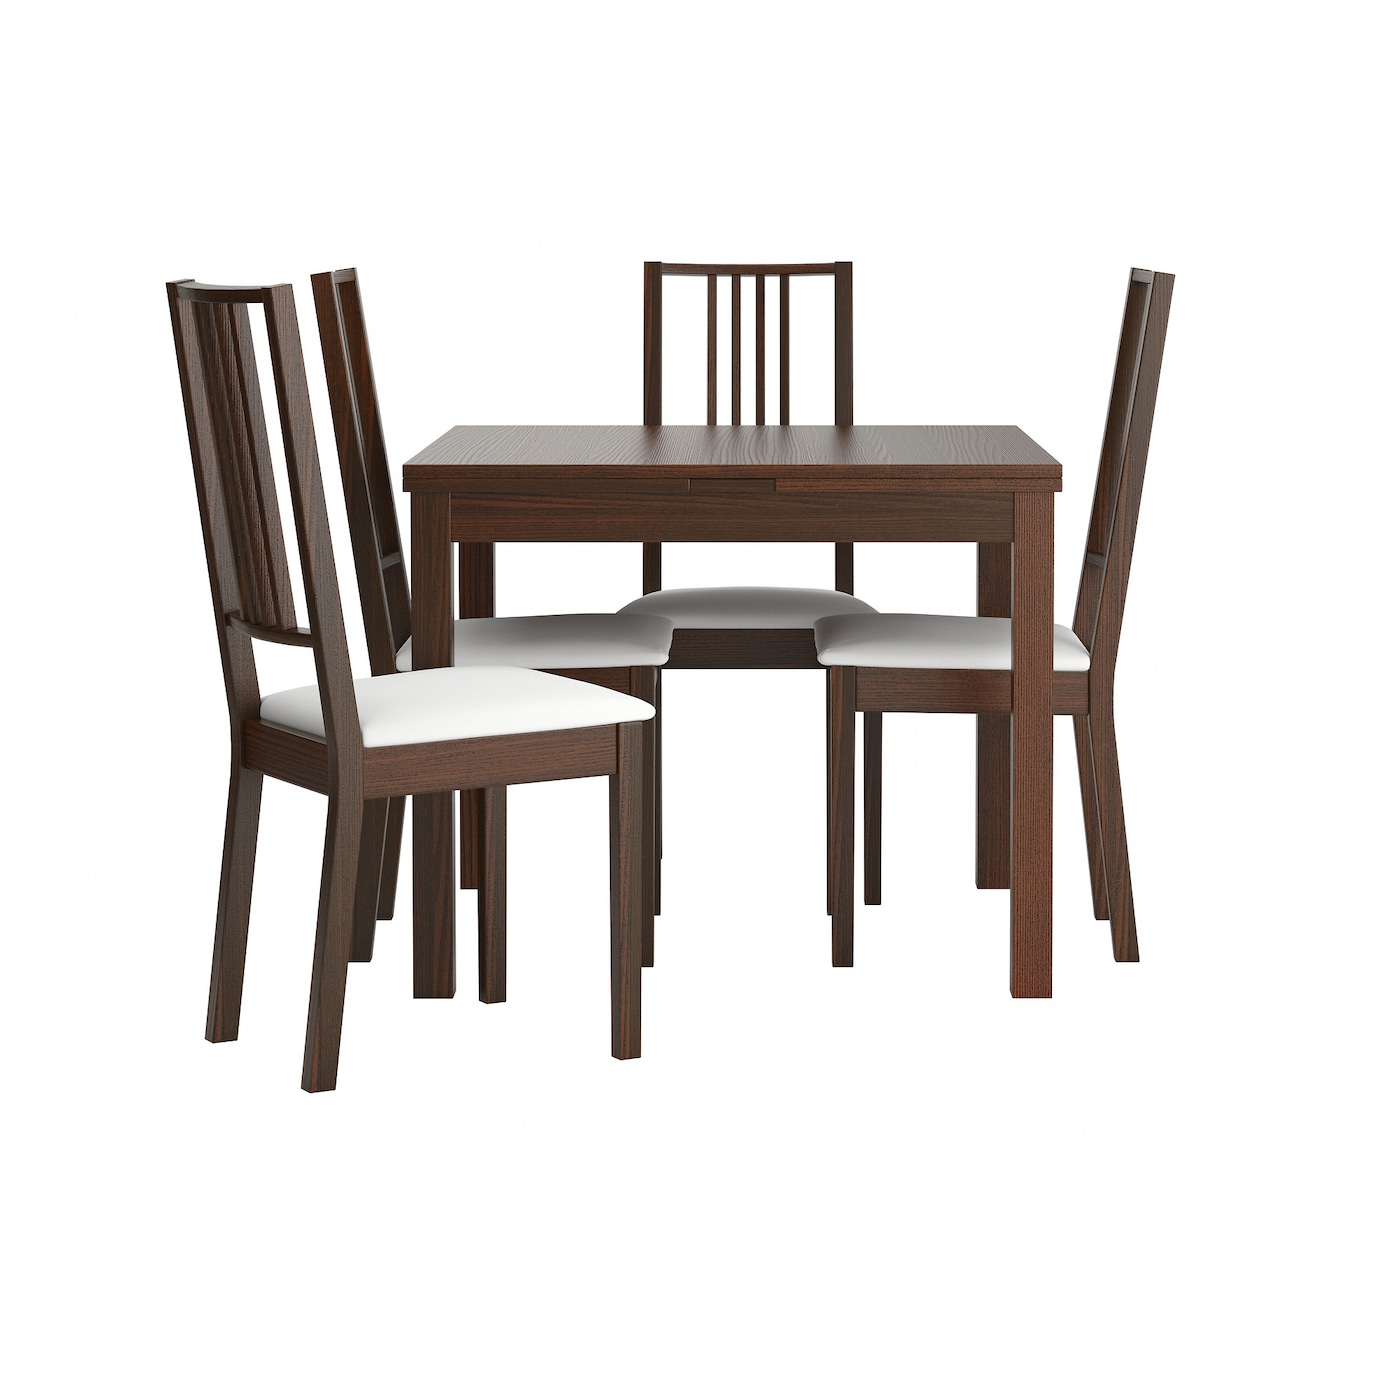 B rje bjursta table and 4 chairs brown gobo white 90 cm ikea for Table 4 personnes ikea